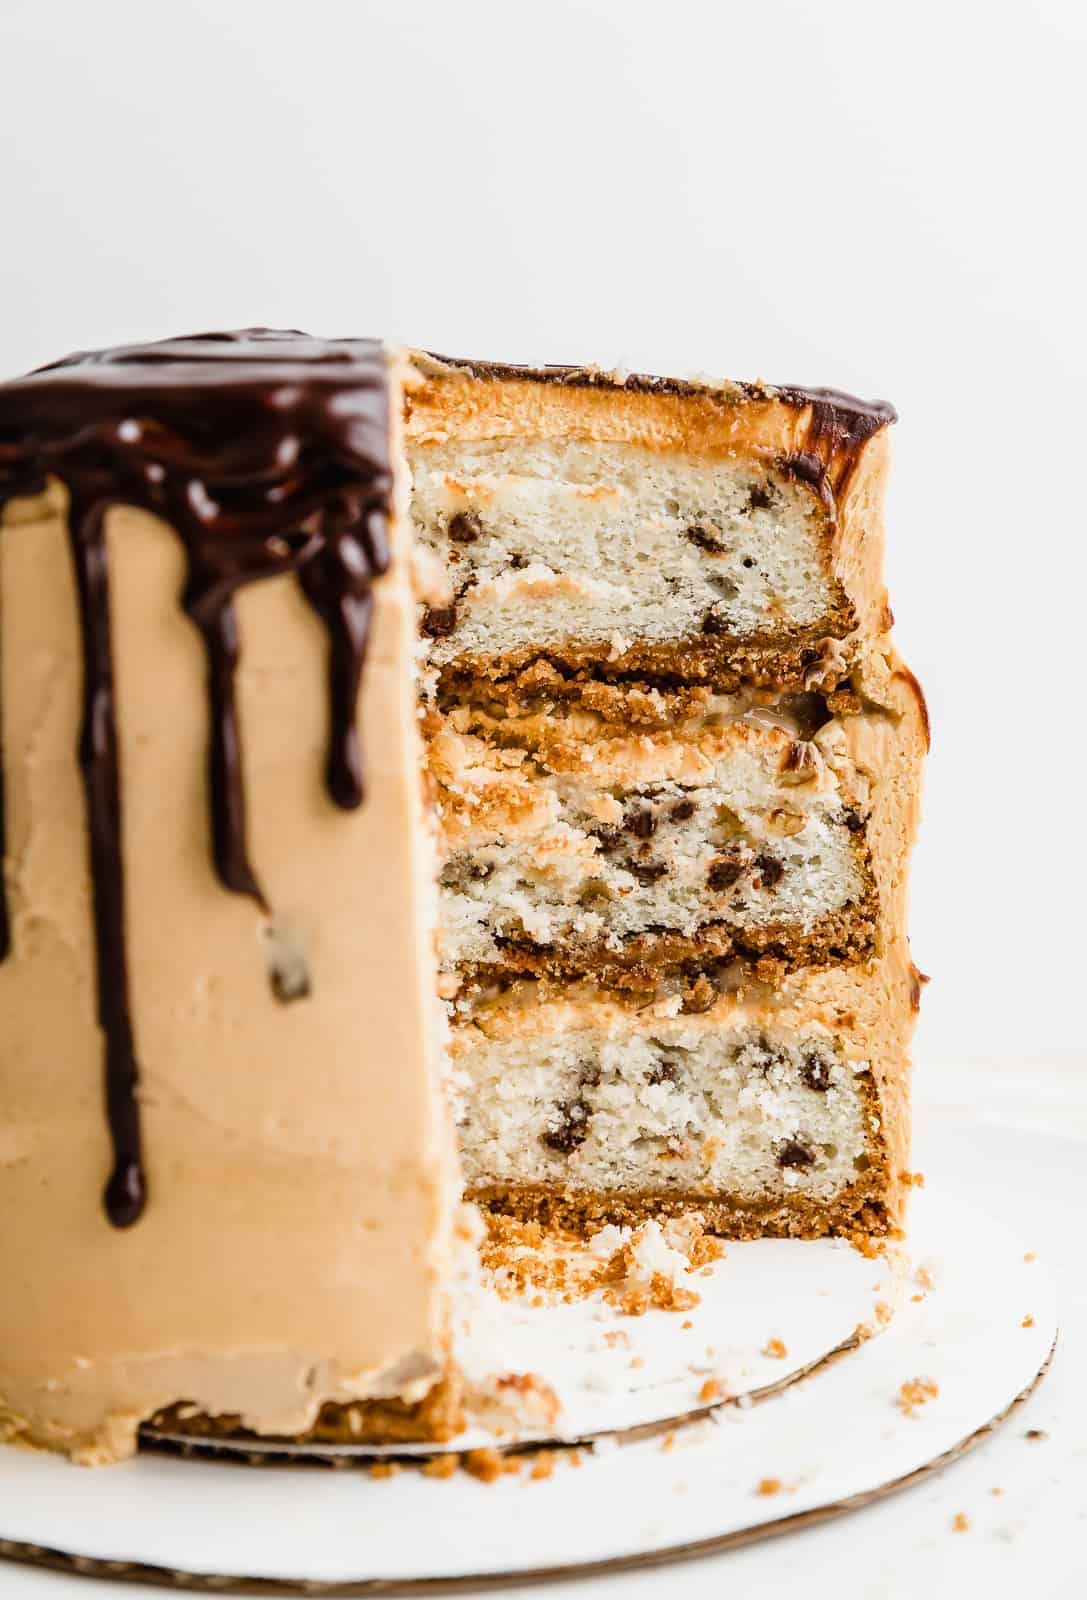 A 7 Layer Bar Cake showcasing the graham cracker crust and 3 layers of white cake and mini chocolate chips.